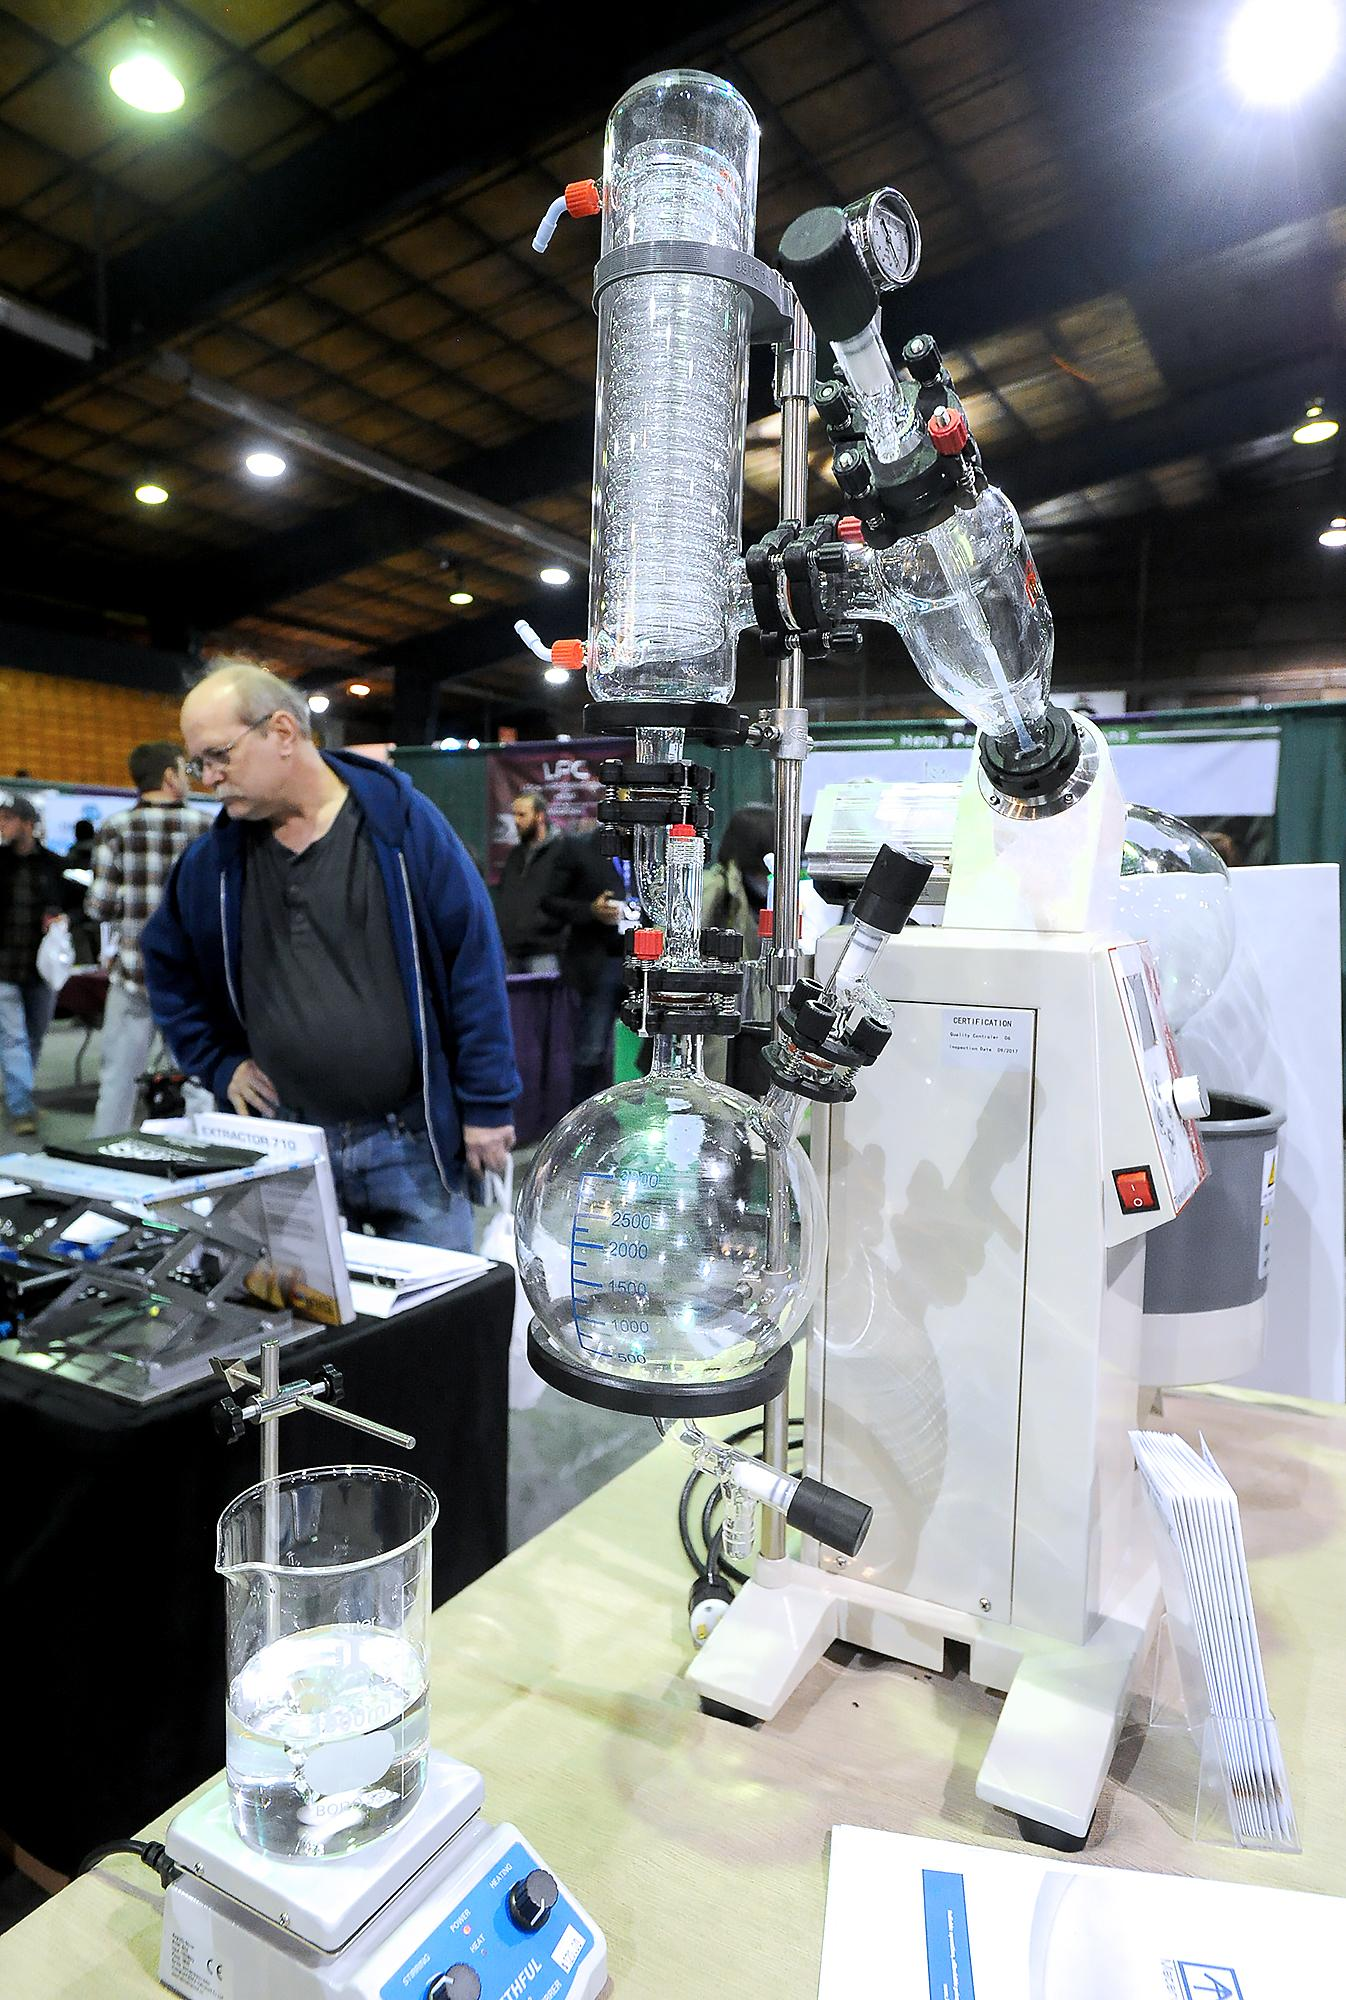 A rotary evaporator for distilling THC and CBD  from cannabis is on display at this year's THC Fair in Central Point. Photo by Denise Baratta